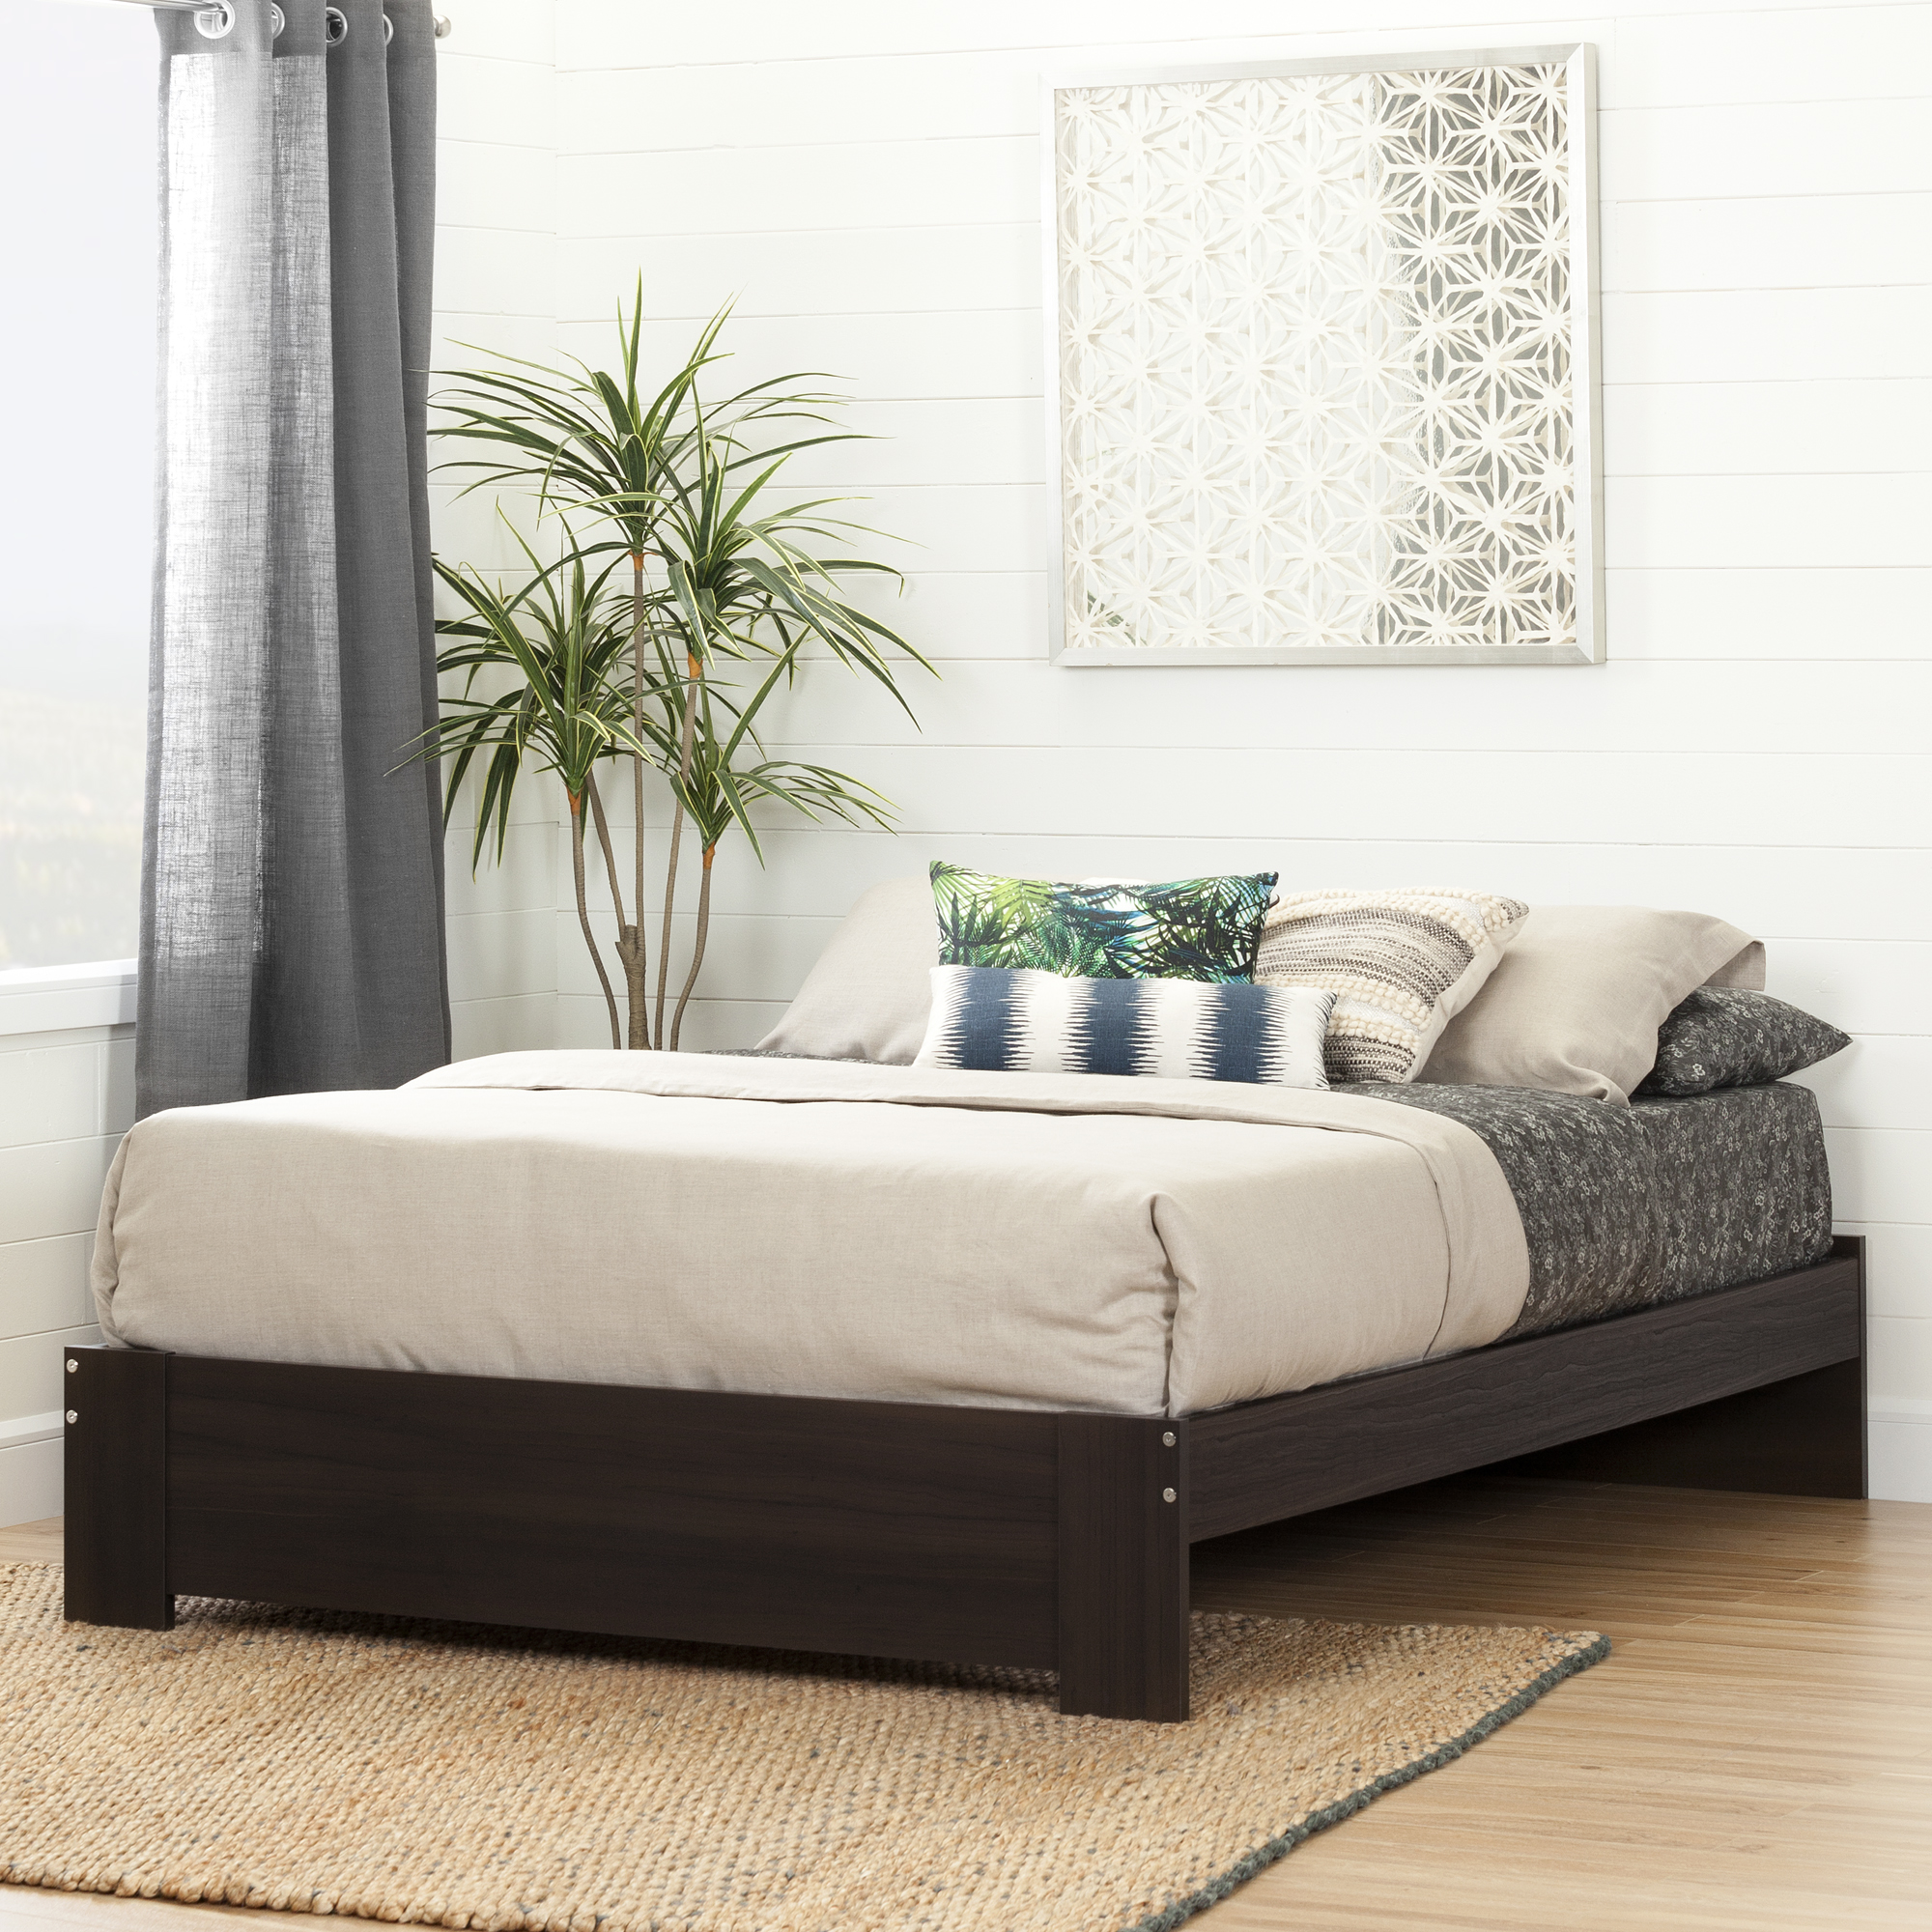 South Shore Reevo Queen Platform Bed, Multiple Finishes by South Shore